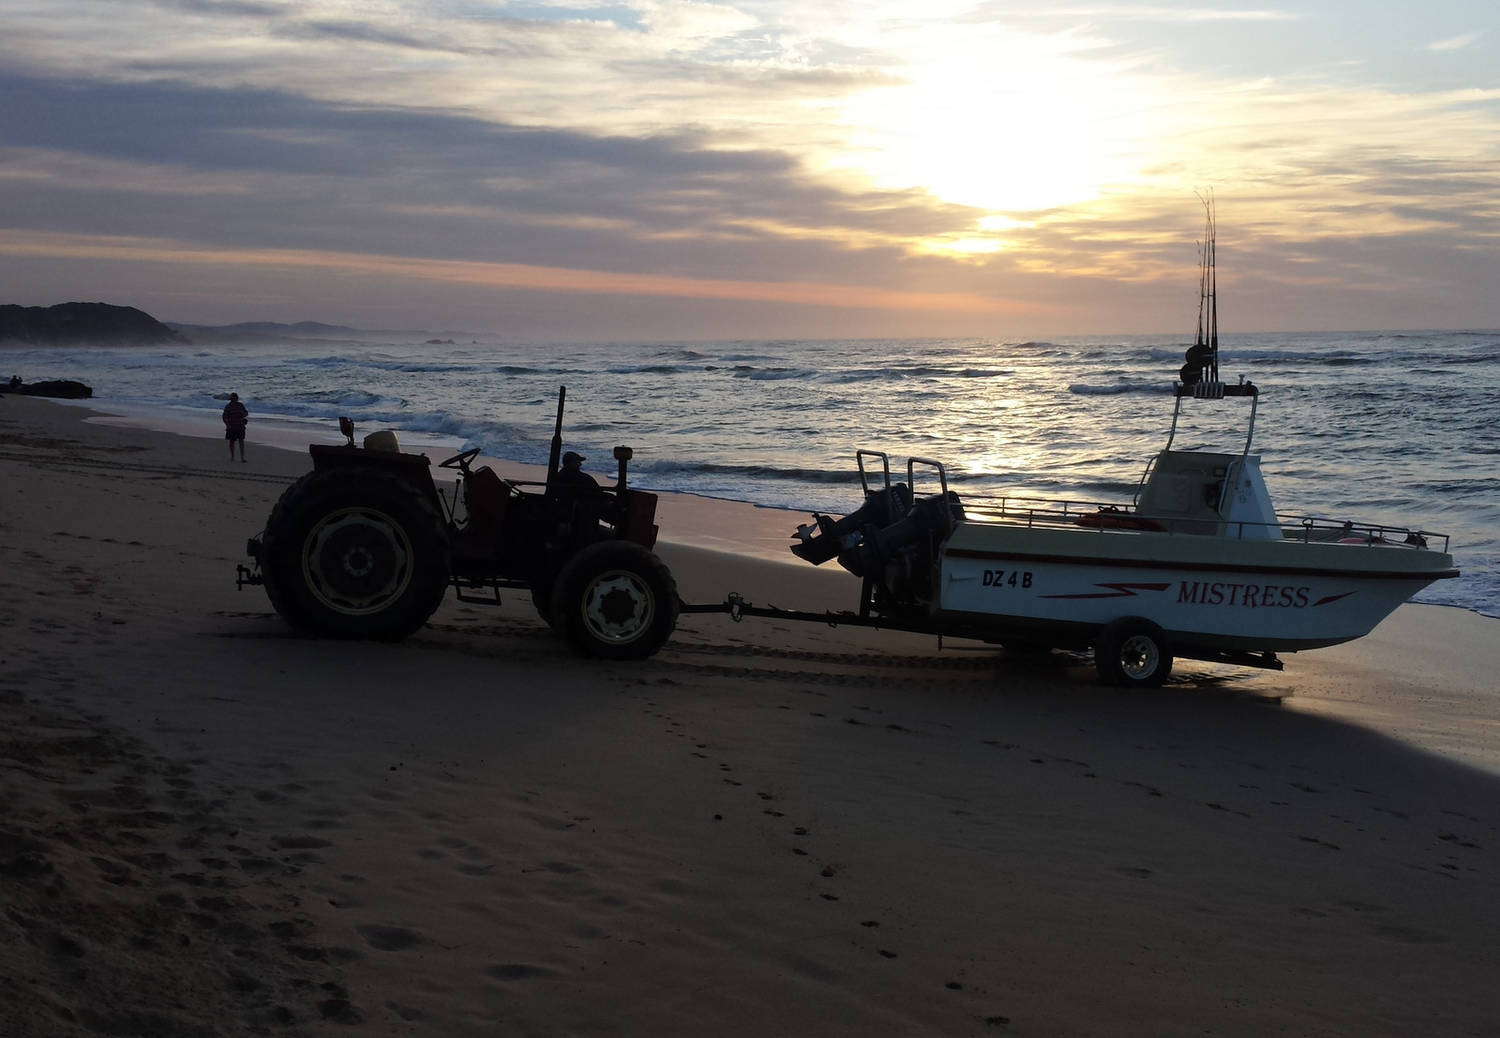 A photograph of a boat being towed on a beach near the sea shore at sunrise